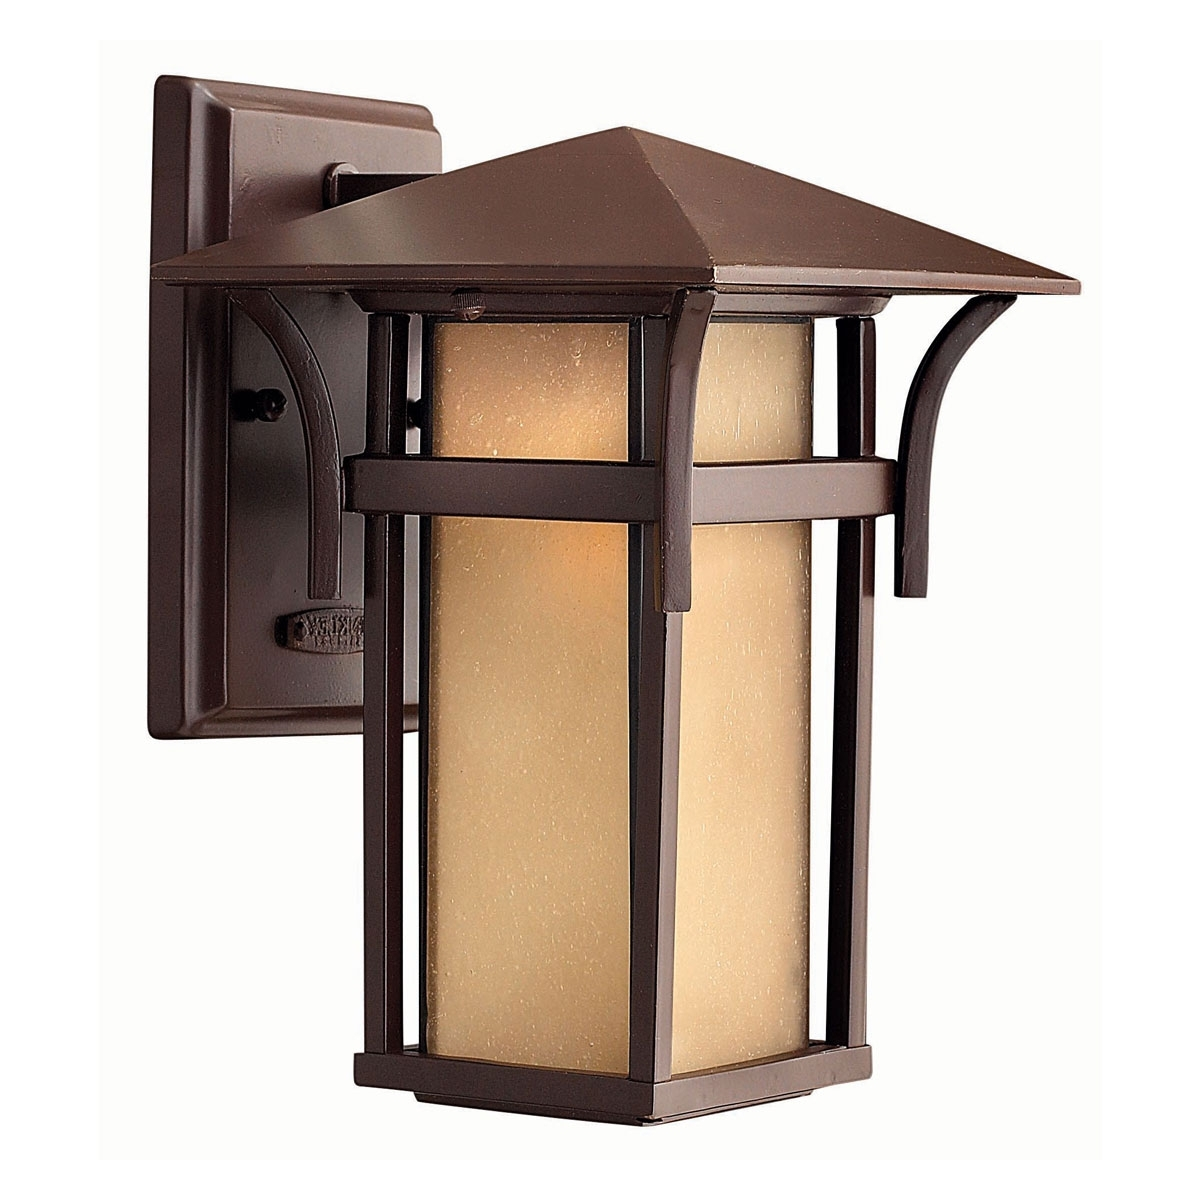 Hinkley Pertaining To Bronze Outdoor Wall Lighting (View 9 of 20)